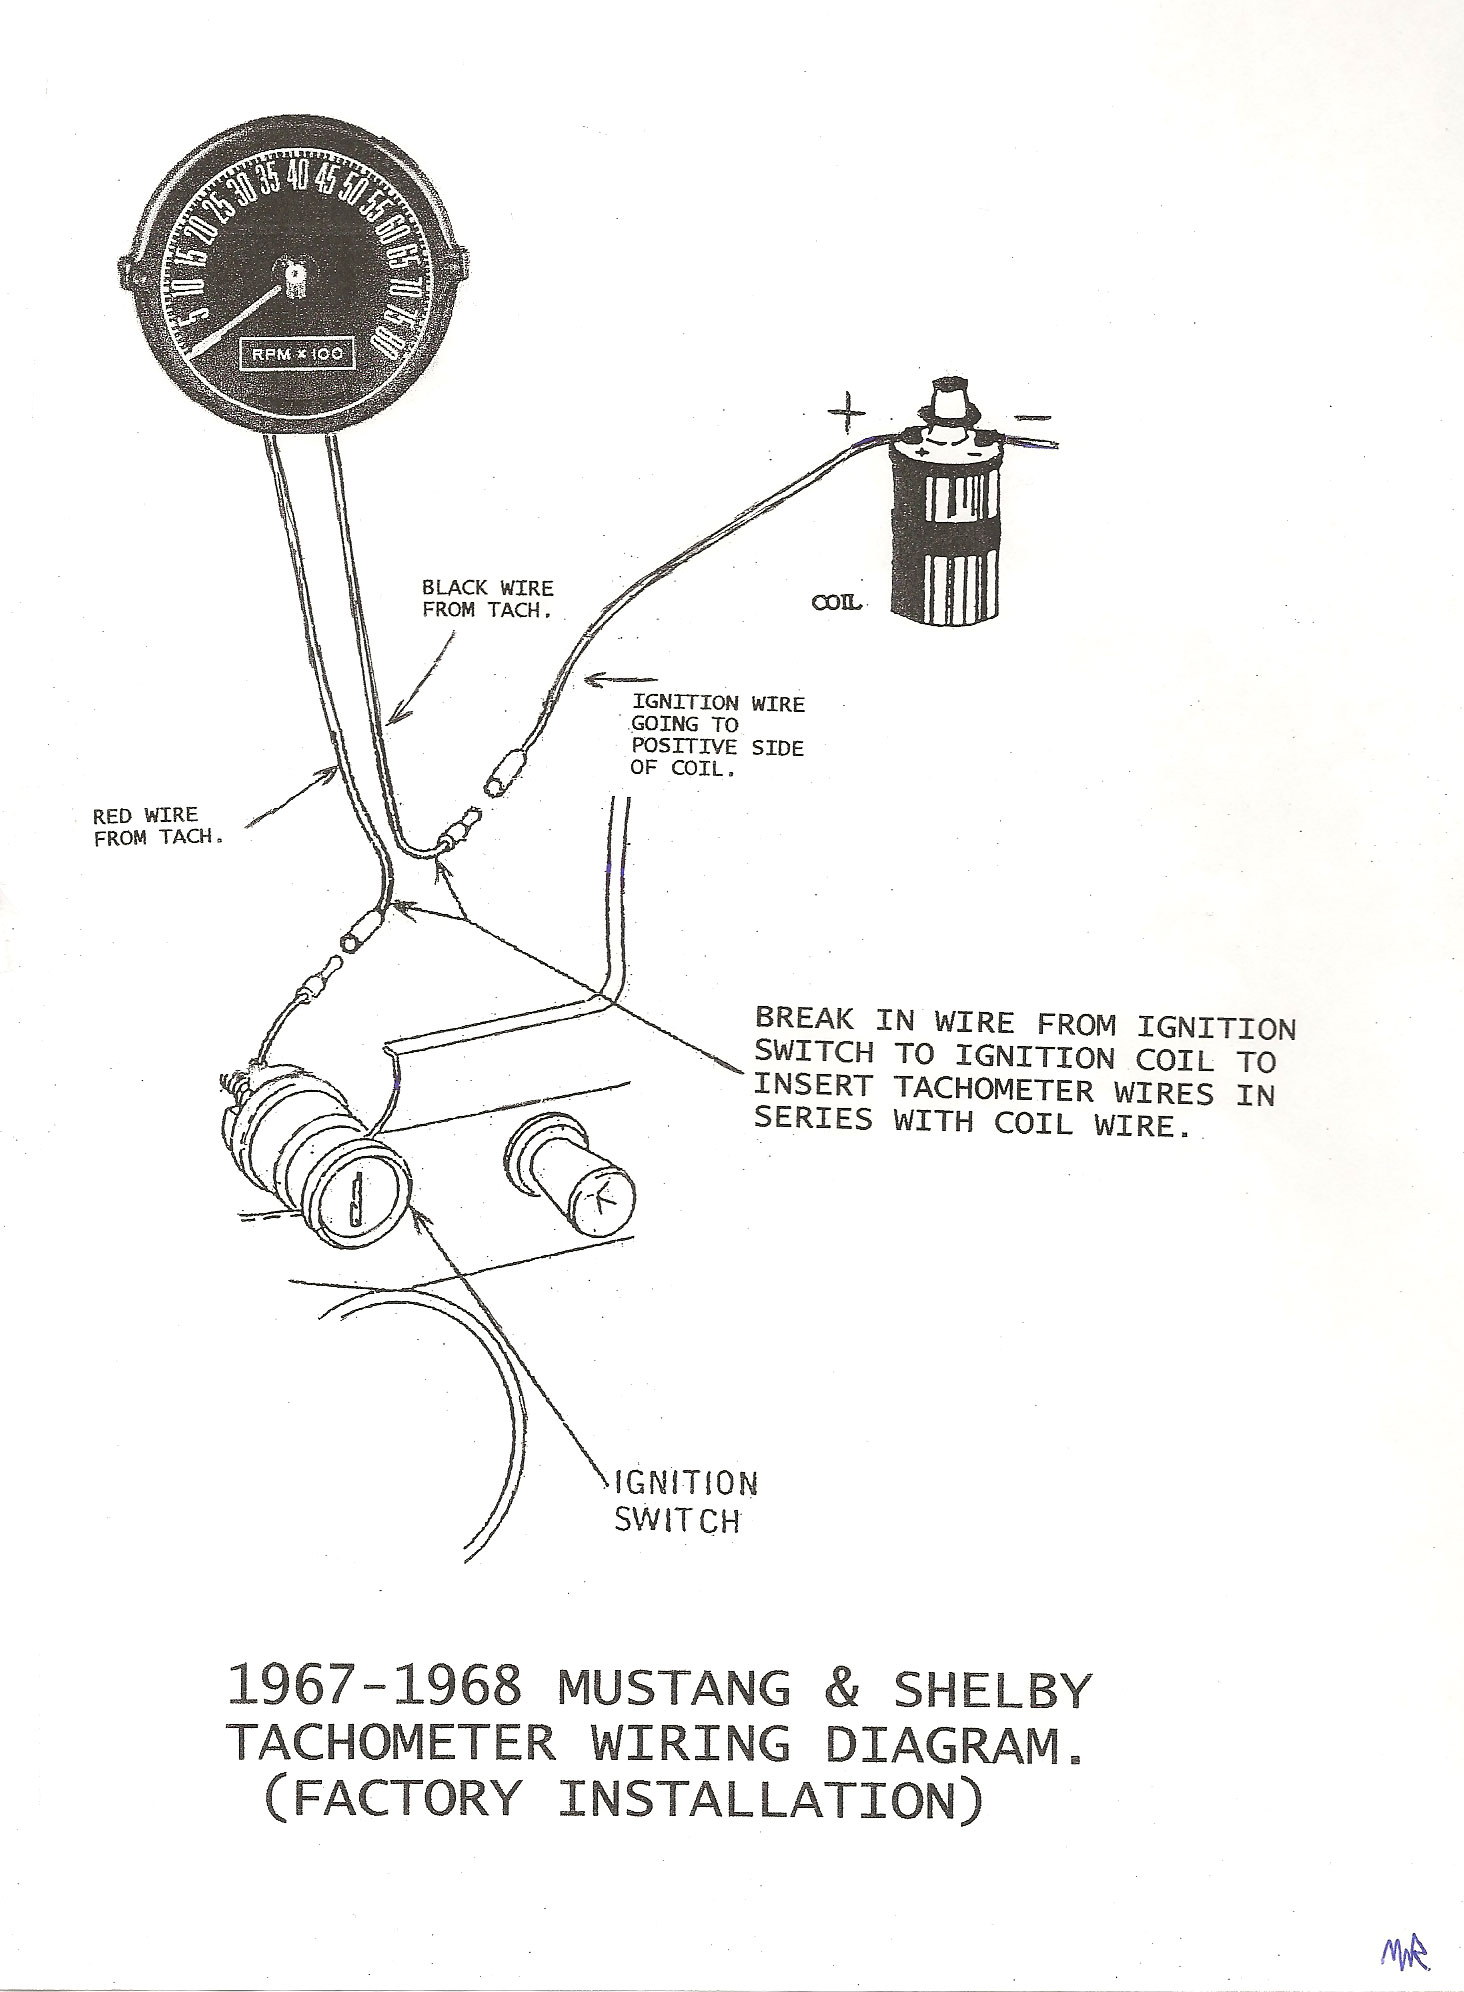 66 Mustang Wiring Harness Aftermarket Start Building A 1969 Tech Info Rh Cobranda Com 1965 1966 Diagram